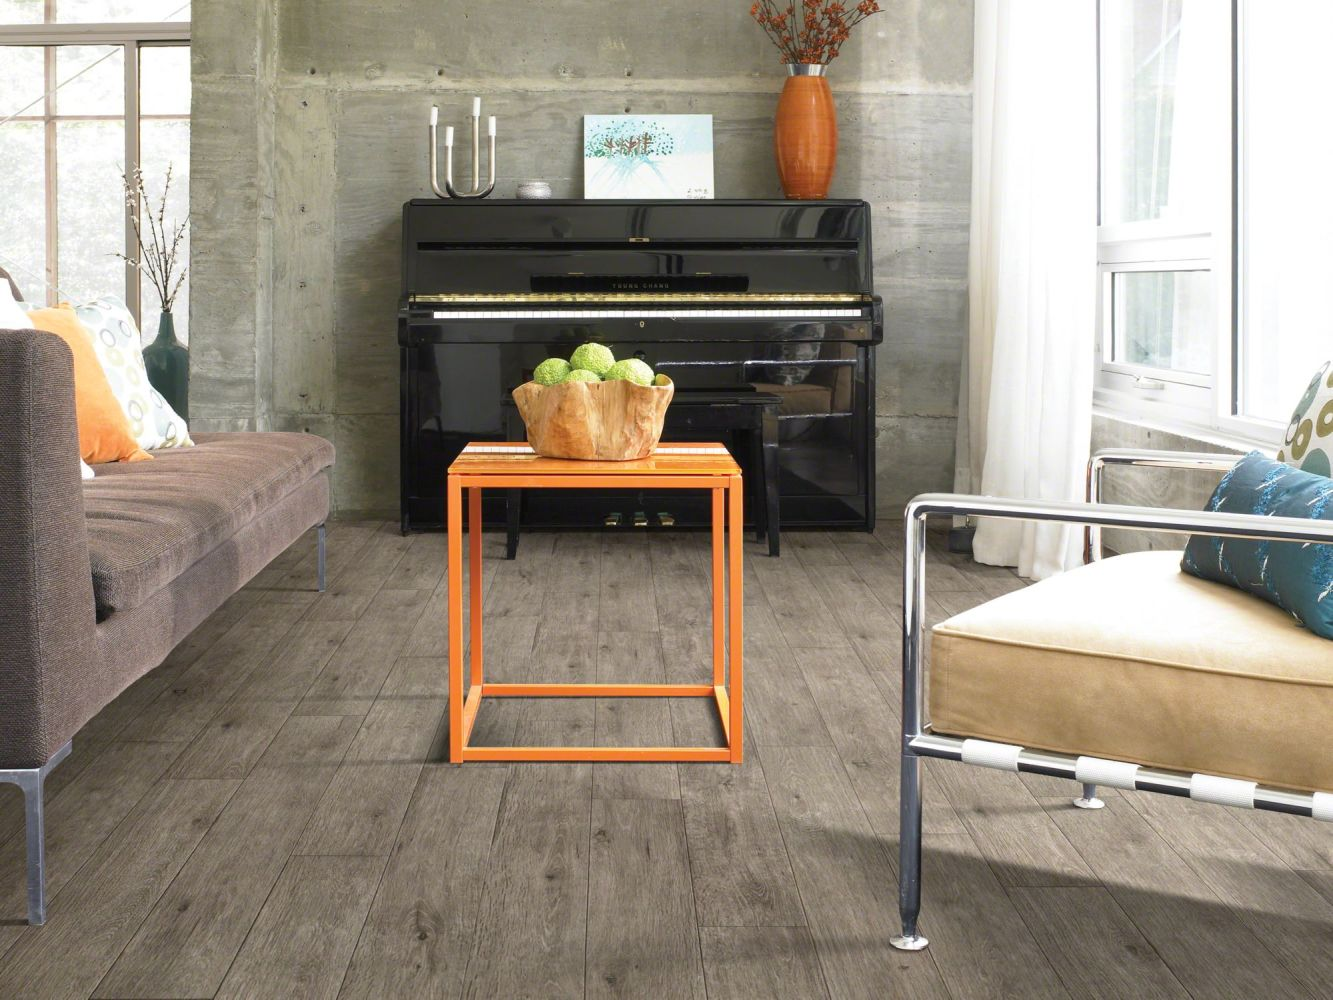 Shaw Floors Vinyl Residential Great Basin Pathfinder 00551_0611V